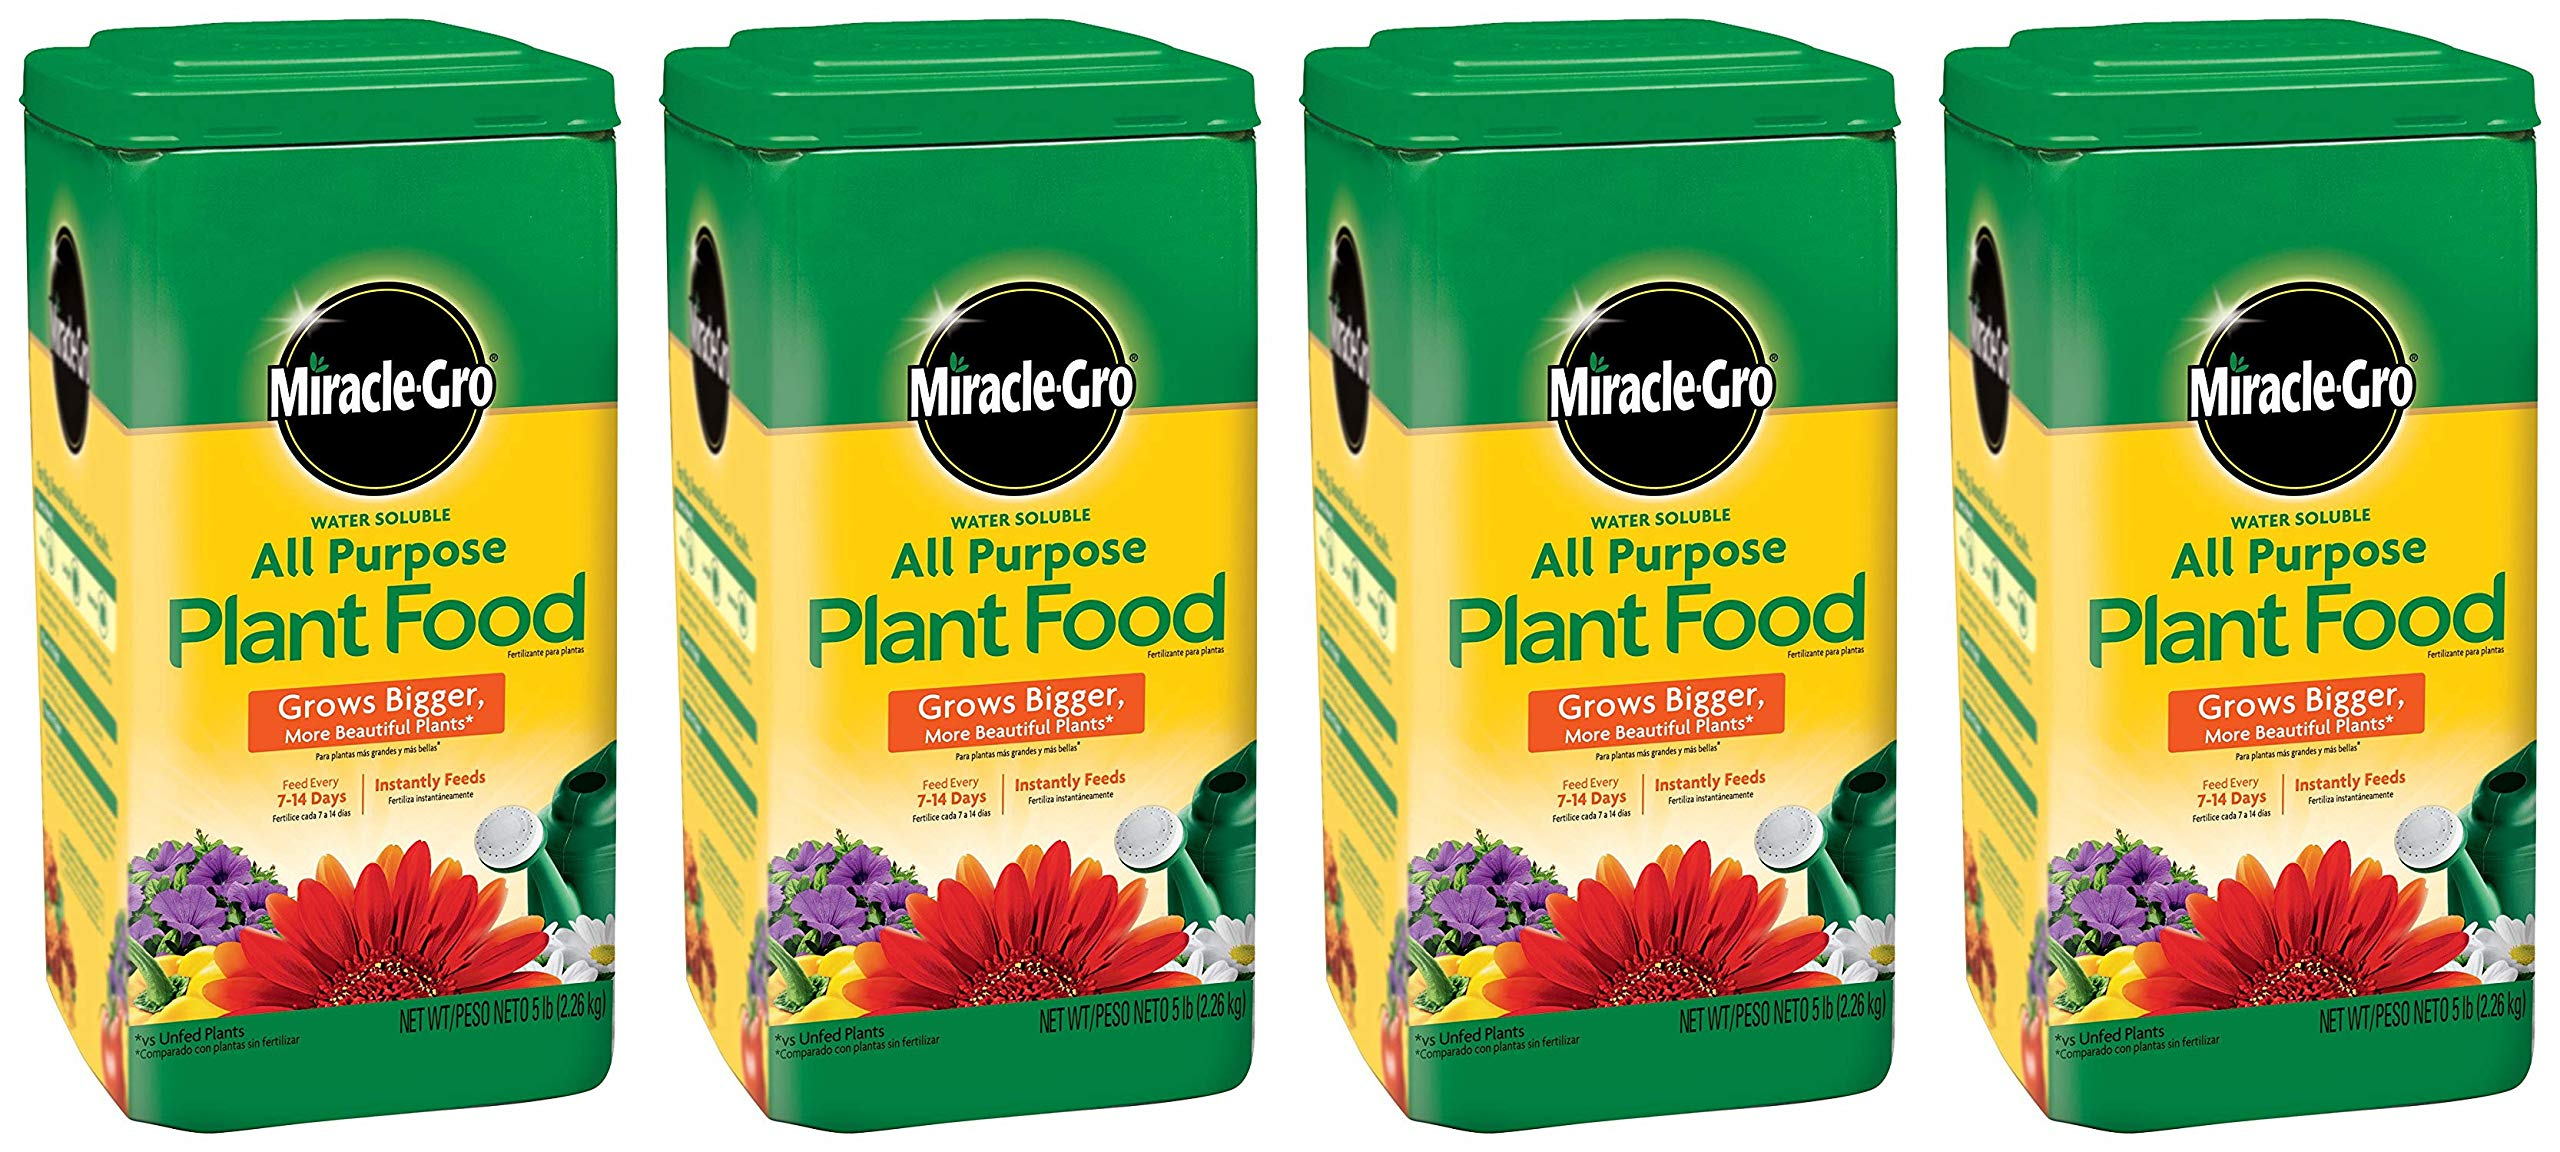 Miracle-Gro 1001233 All Purpose Plant Food - 5 Pound (4 Pack)